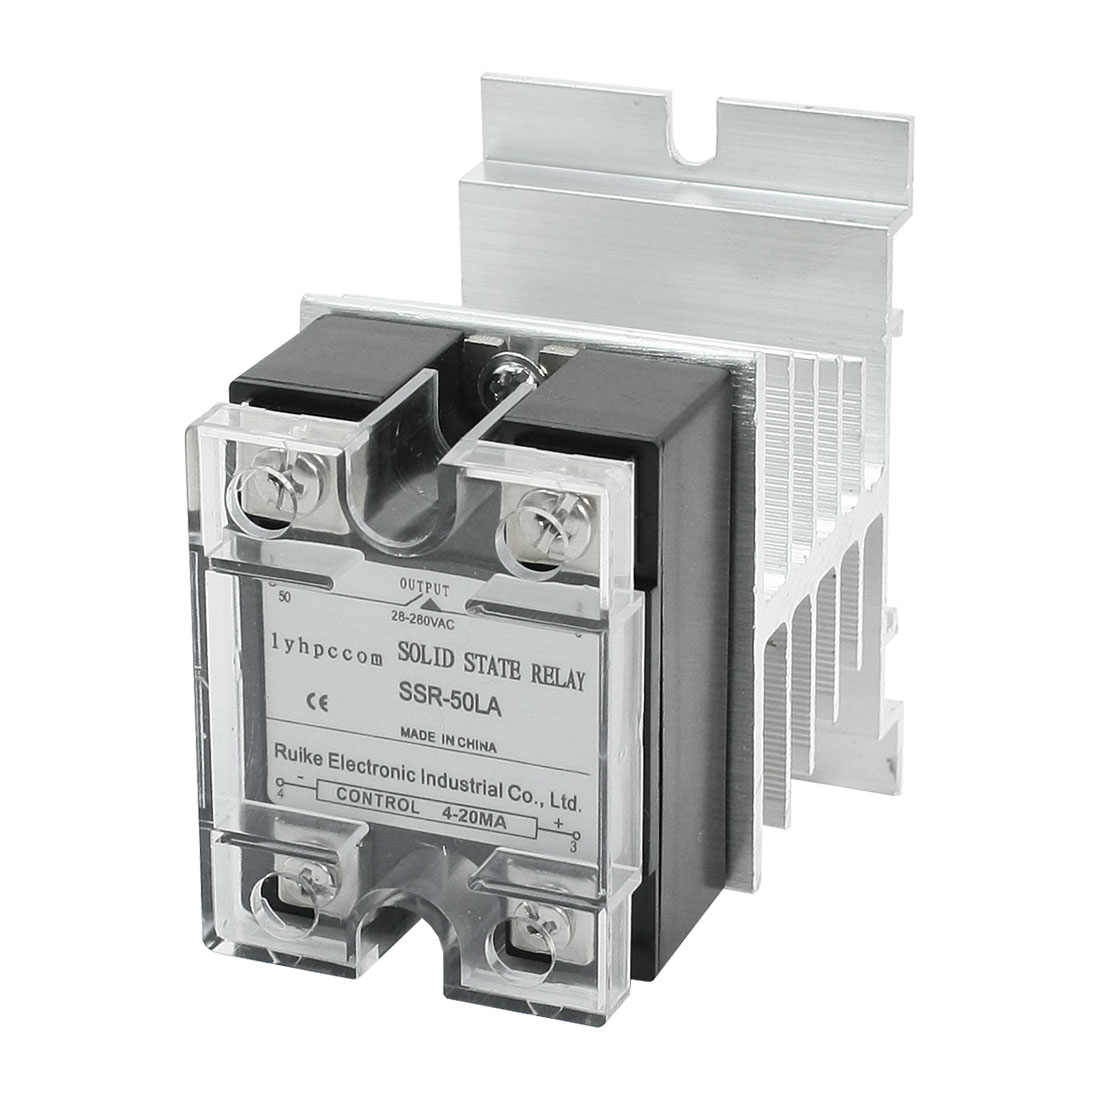 4-20mA Input AC28-280V 50A Output 4 Screw Terminal Single Phase Clear Cover Solid State Relay w Aluminum Heat Sink